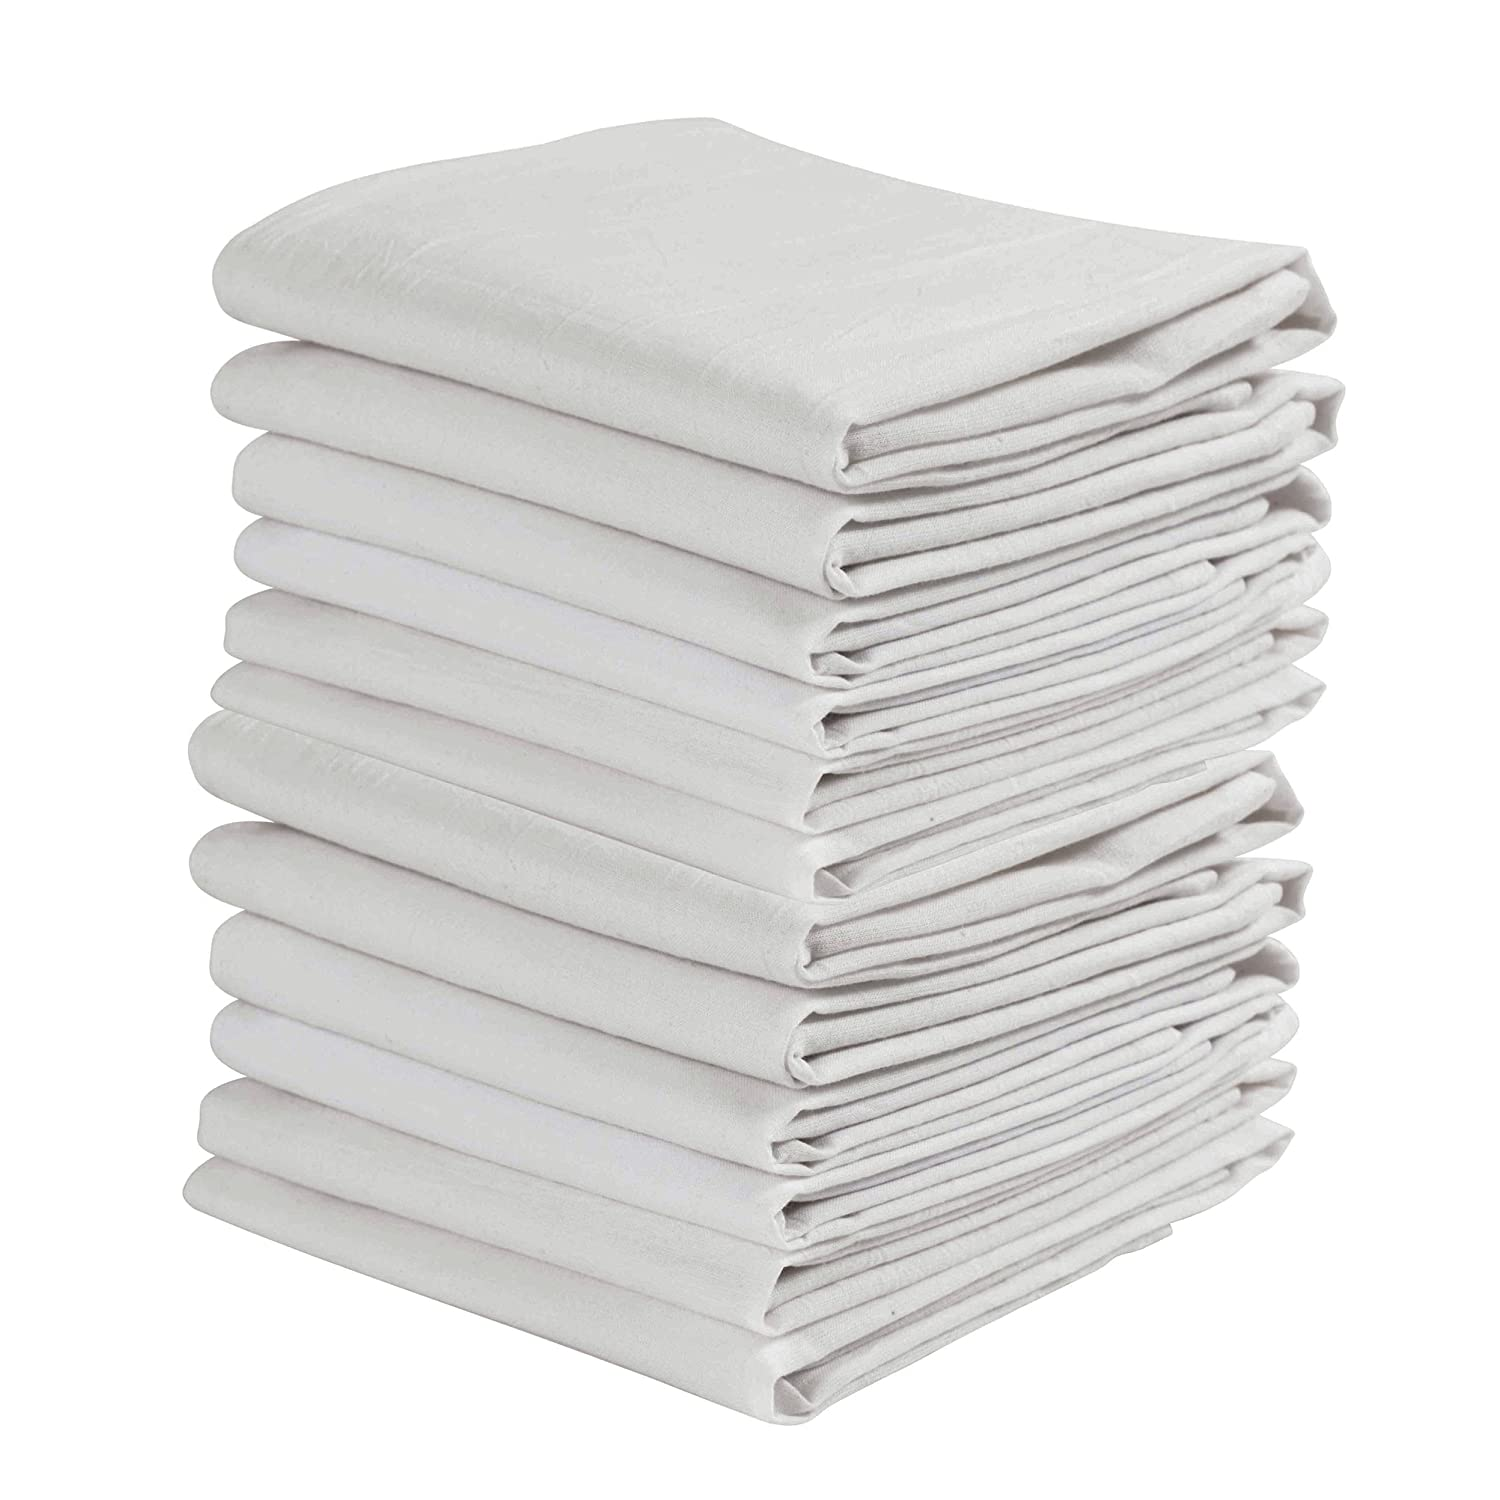 KAF Home Set of 12 White WRINKLED Flour Sack Kitchen / Chef Towels, 100-Percent Cotton, Absorbent, Extra Soft (20 x 30-Inches)